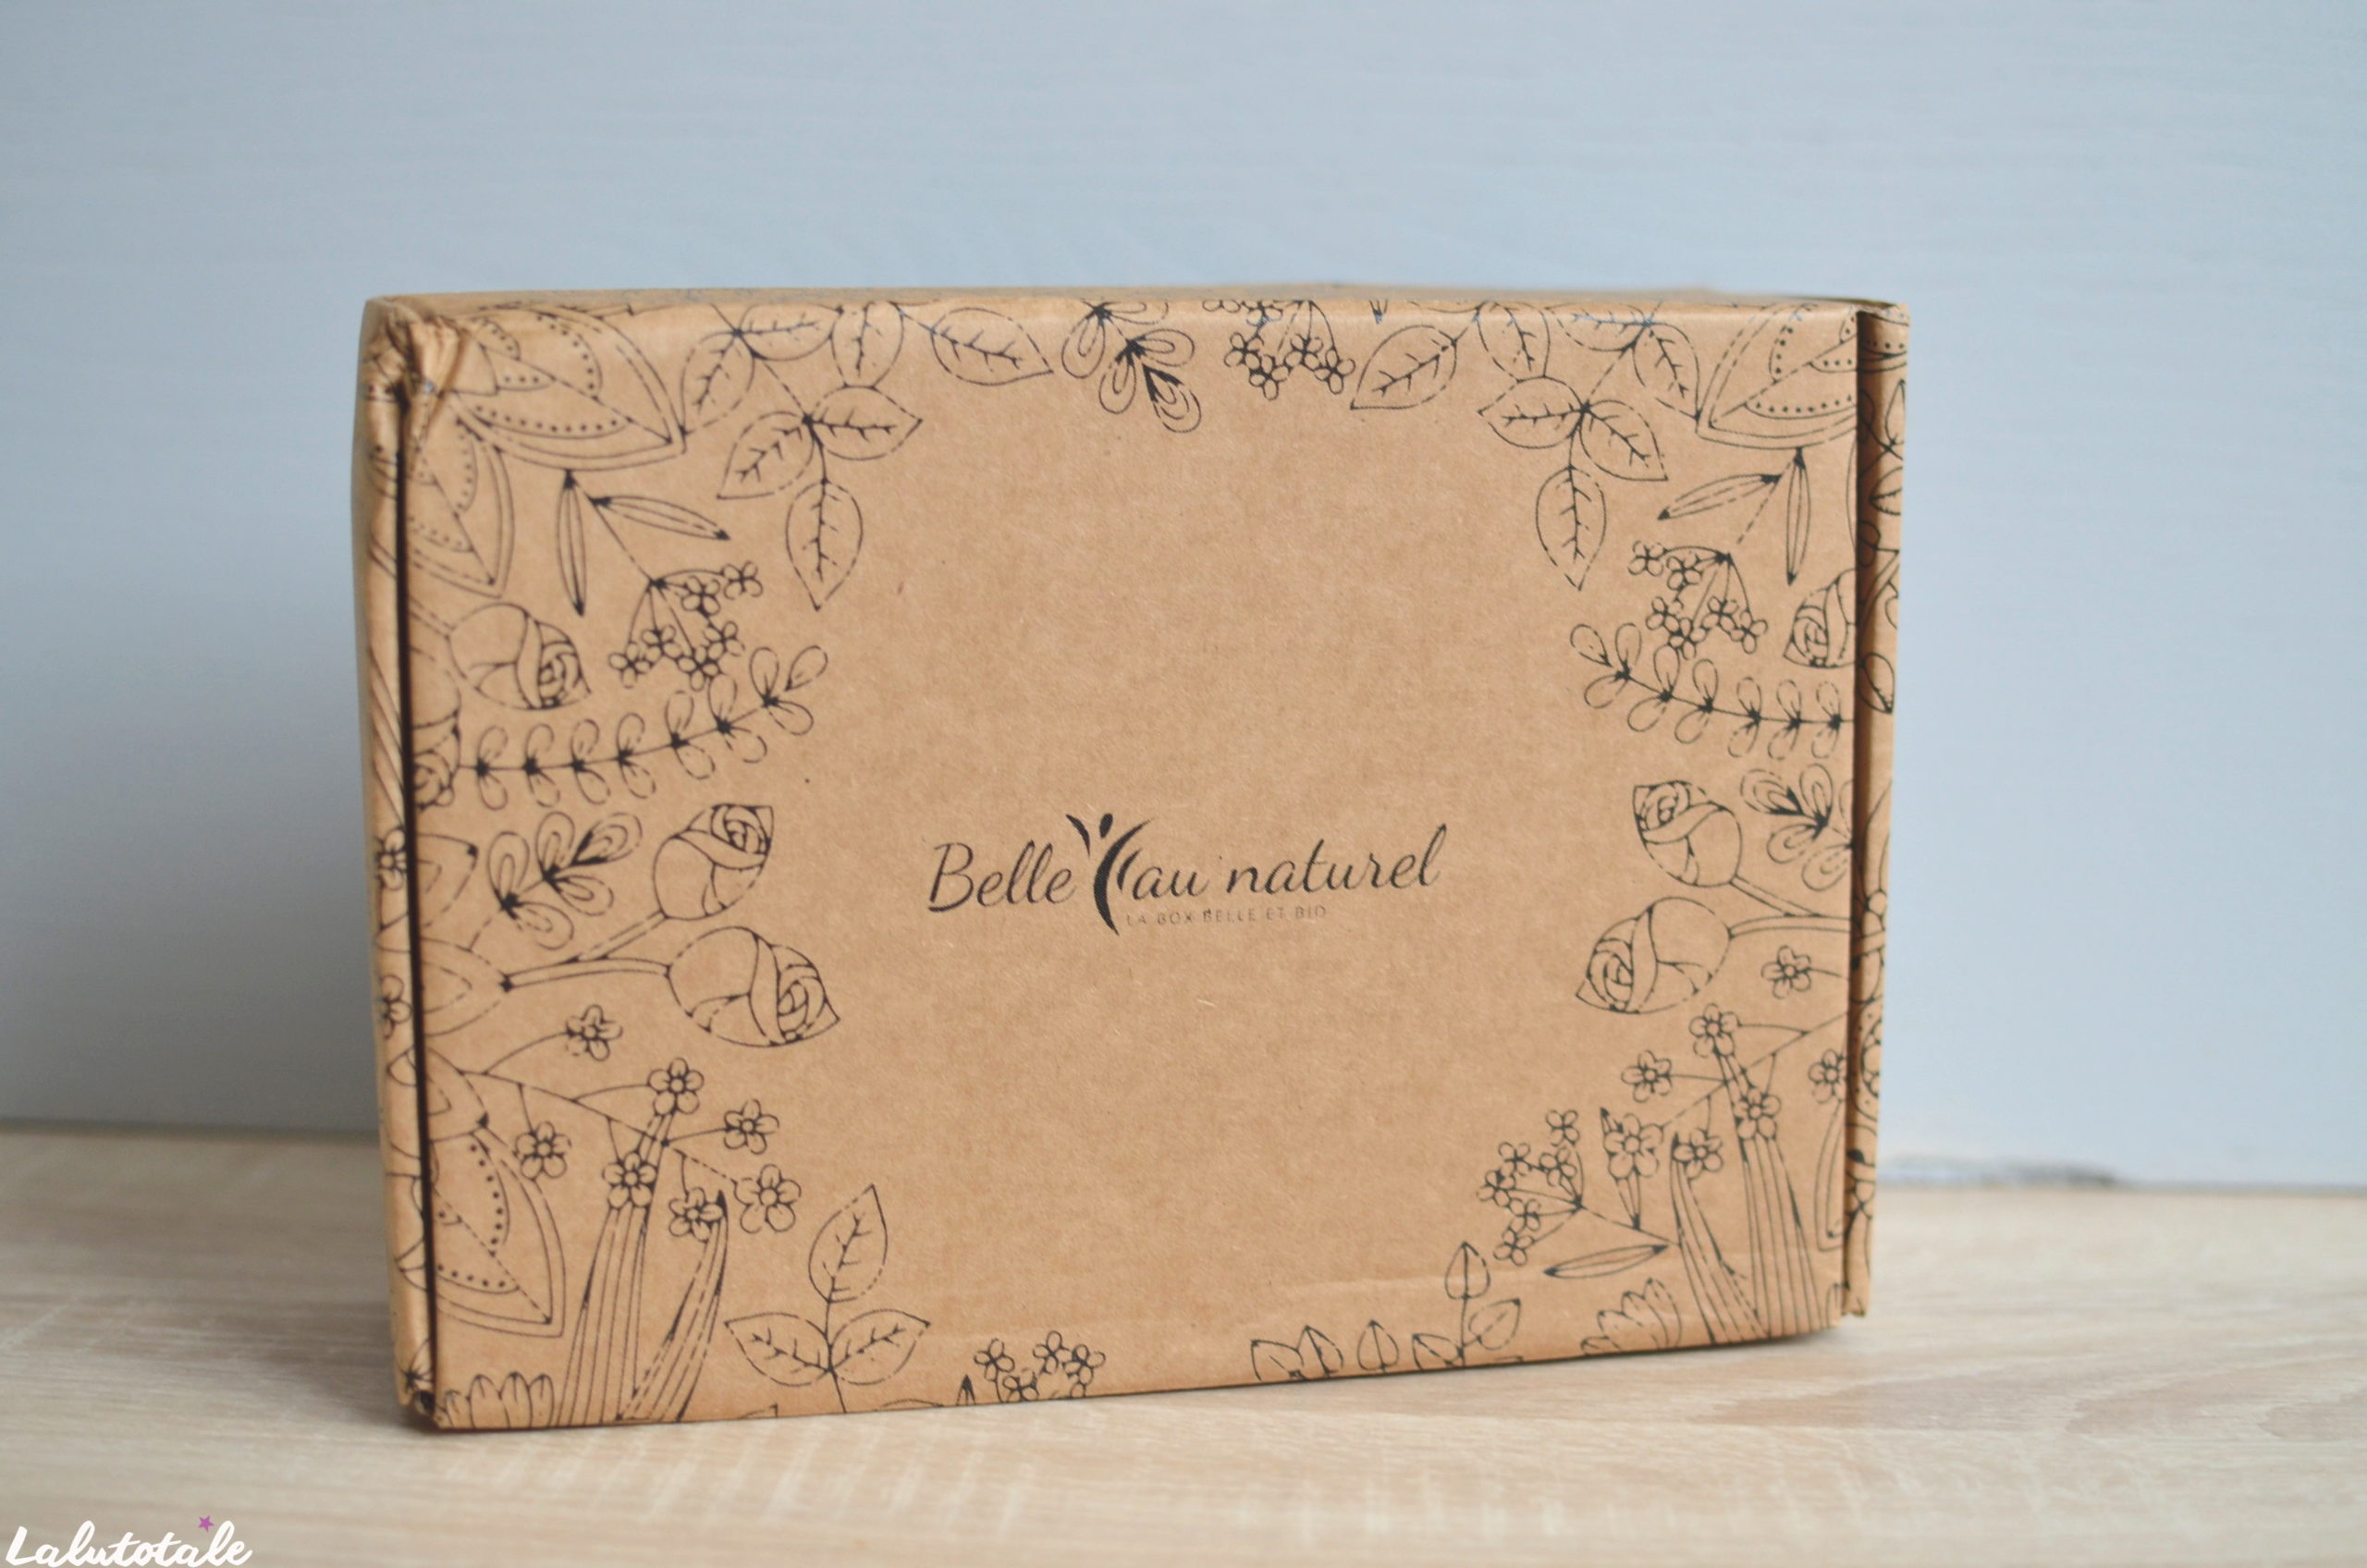 belle naturel box beaute janvier 2020 haul